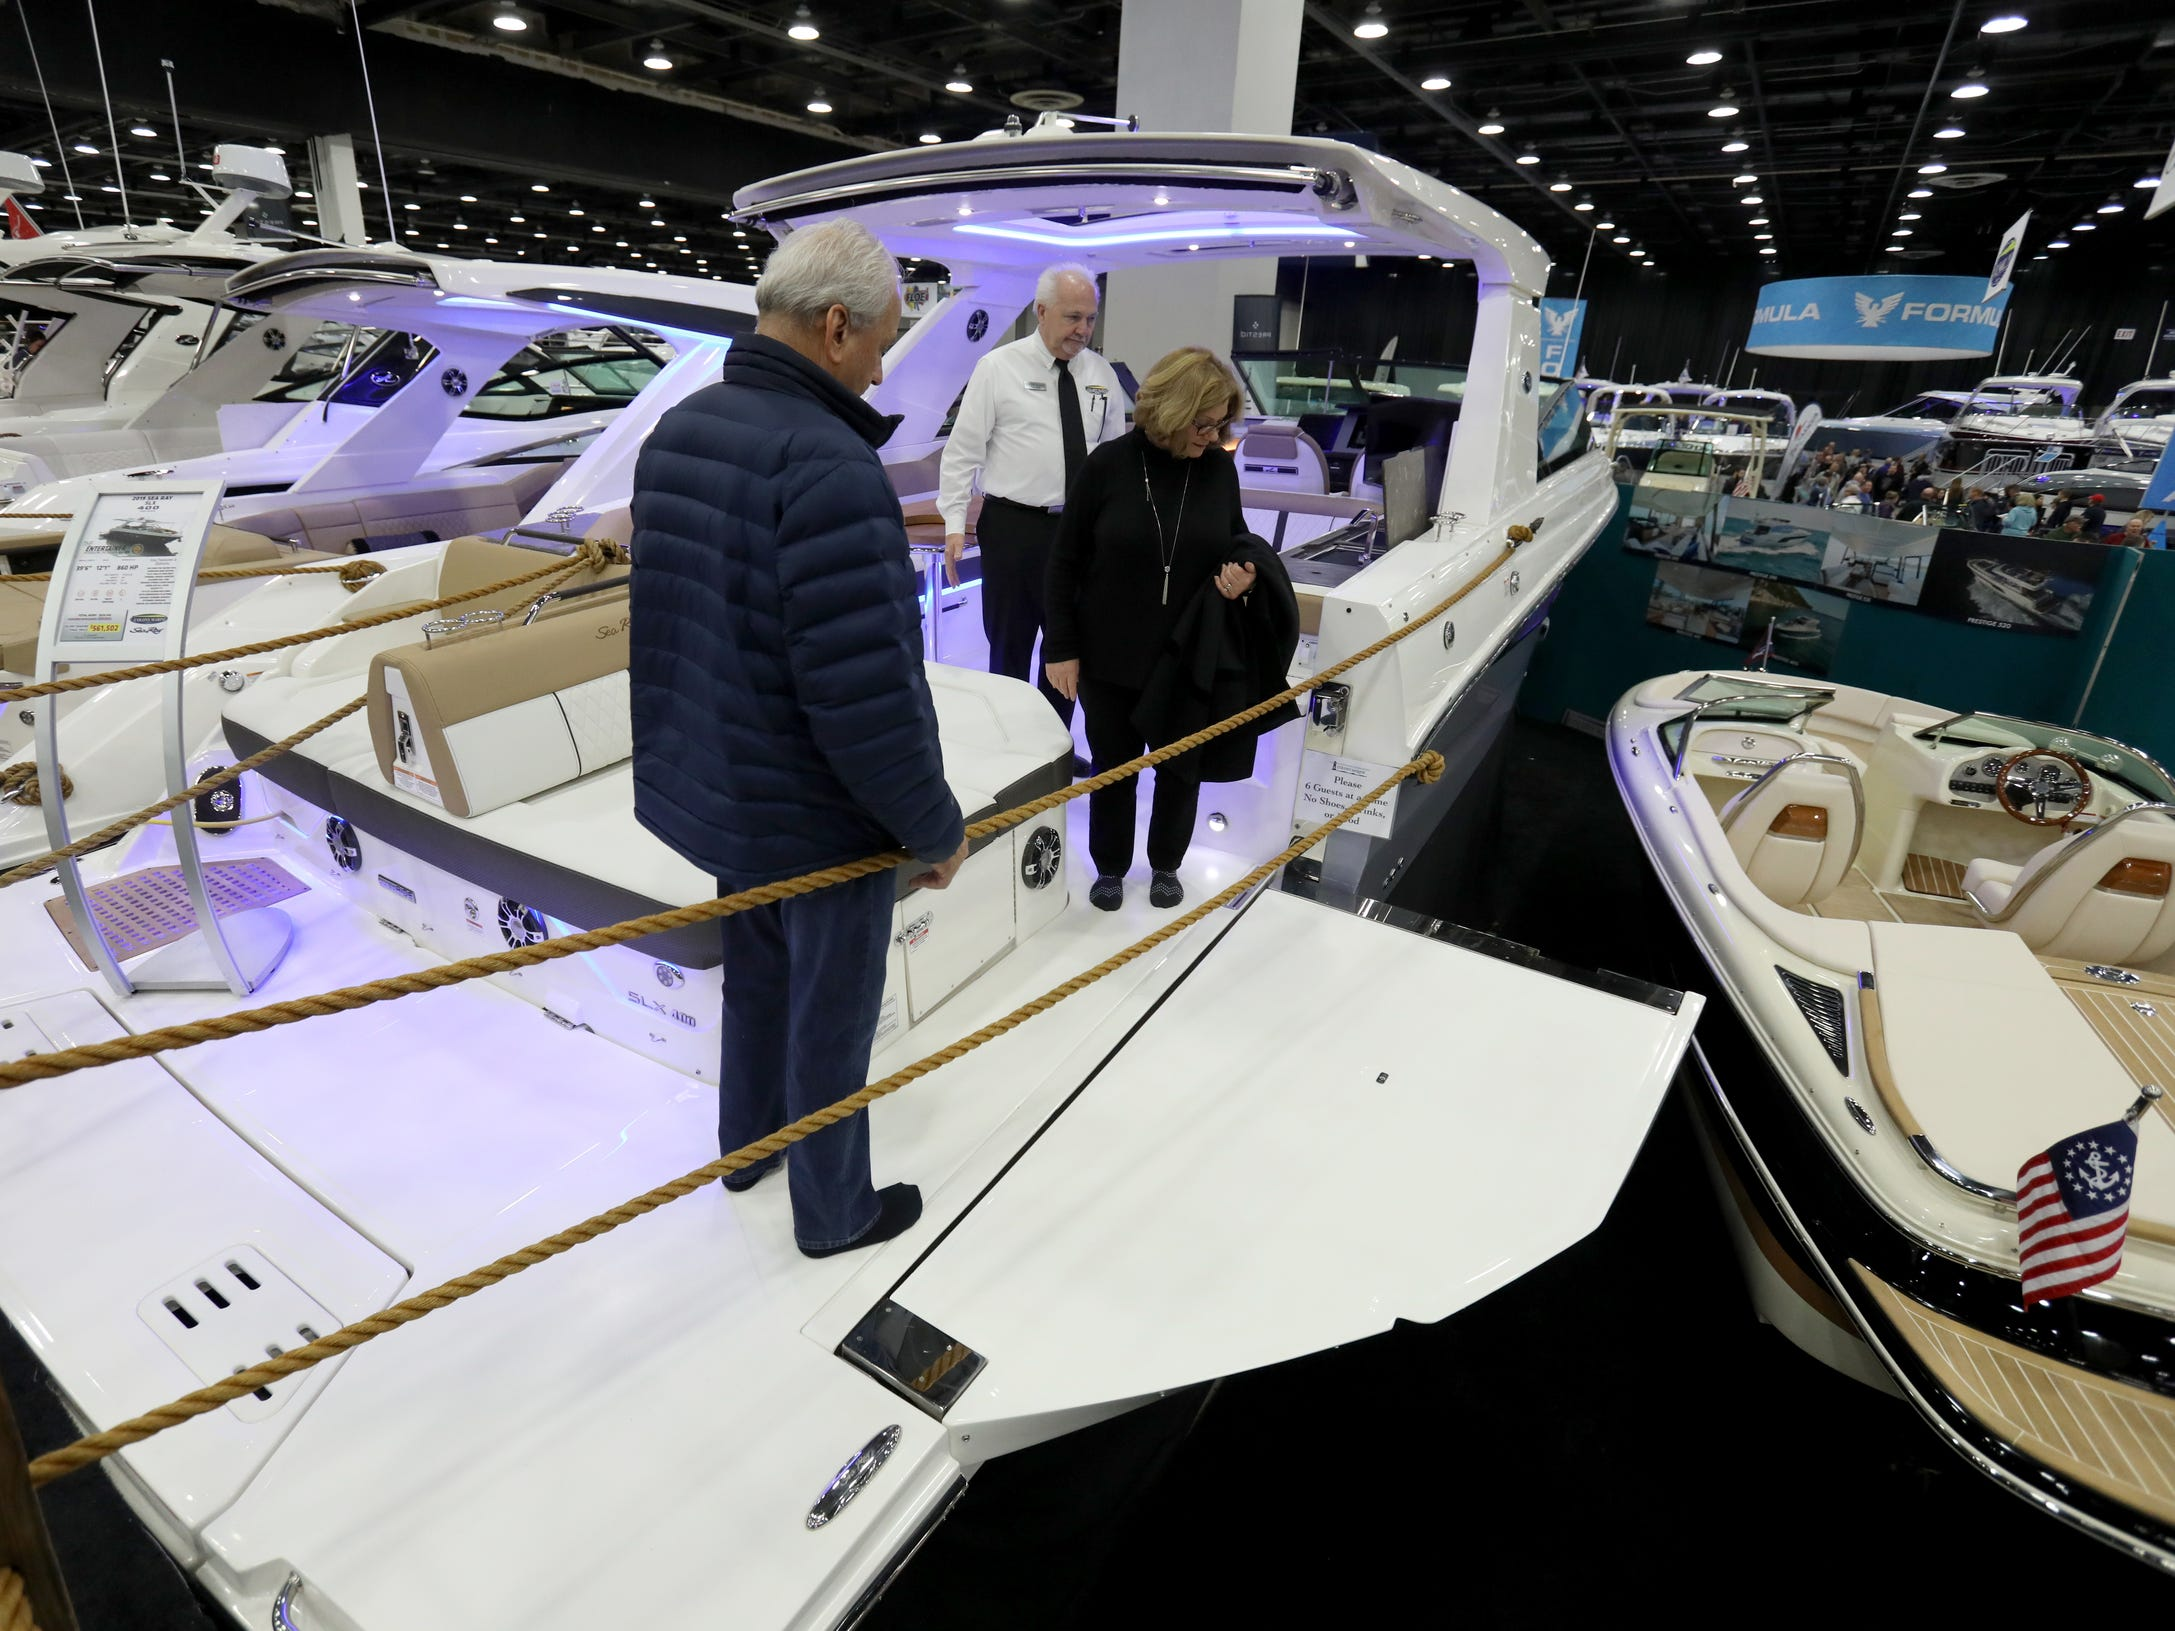 """One of unique features of the 2019 Sea Ray SLX 400 """"The Entertainer"""" that costs $561,502 is this hydraulic terrace on the boat that folds down serving as a swimming platform,It was one of hundreds of boats on display during the Detroit Boat Show at Cobo Center in Detroit on Saturday, February 16, 2019.."""